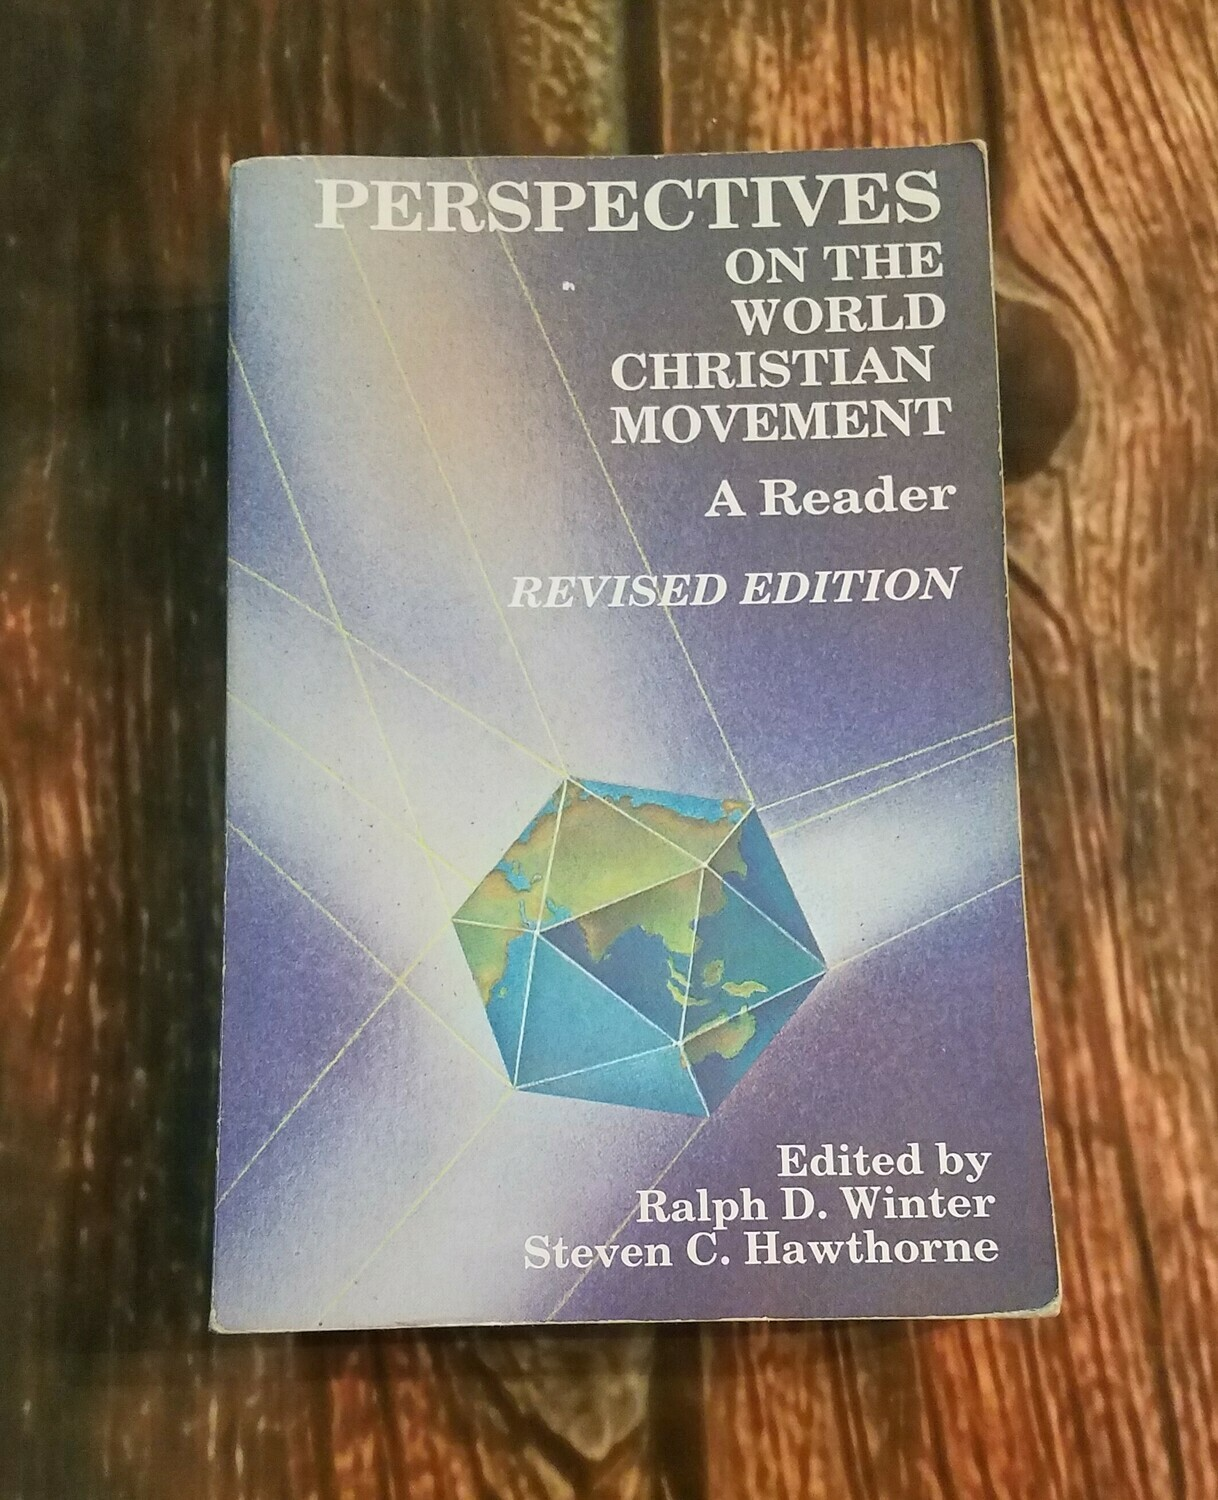 Perspectives on the World Christian Movement: Revised Edition by Ralph D. Winter and Steven C. Hawthorne